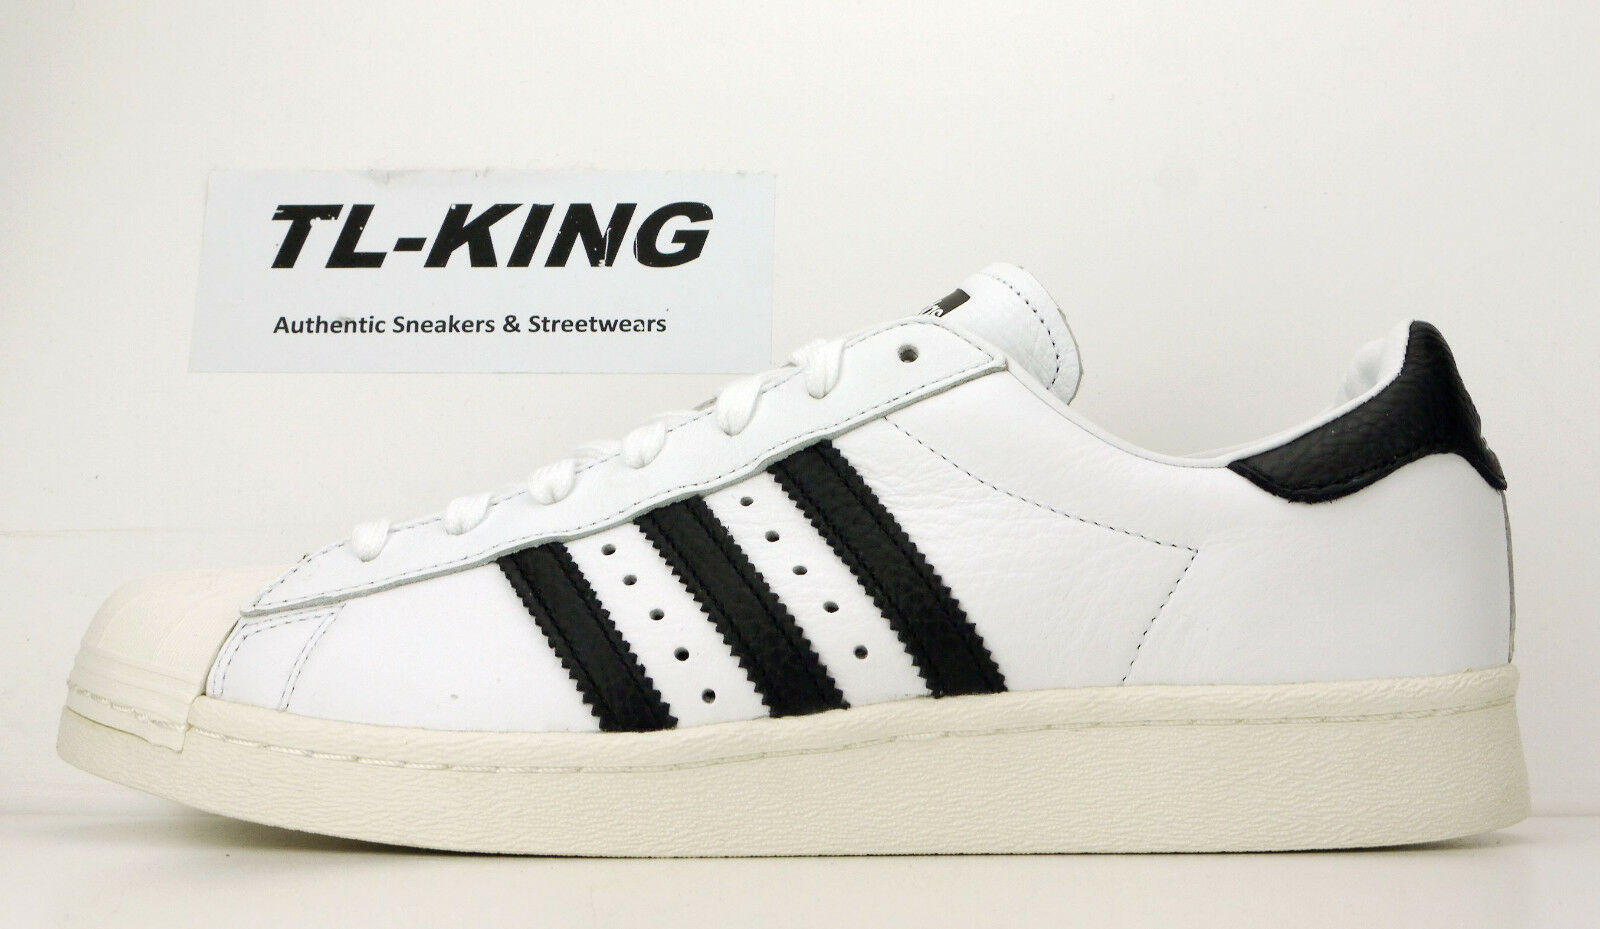 Adidas superstar bz0202 impulso bianco nero bz0202 superstar originali msrp fg b4230c